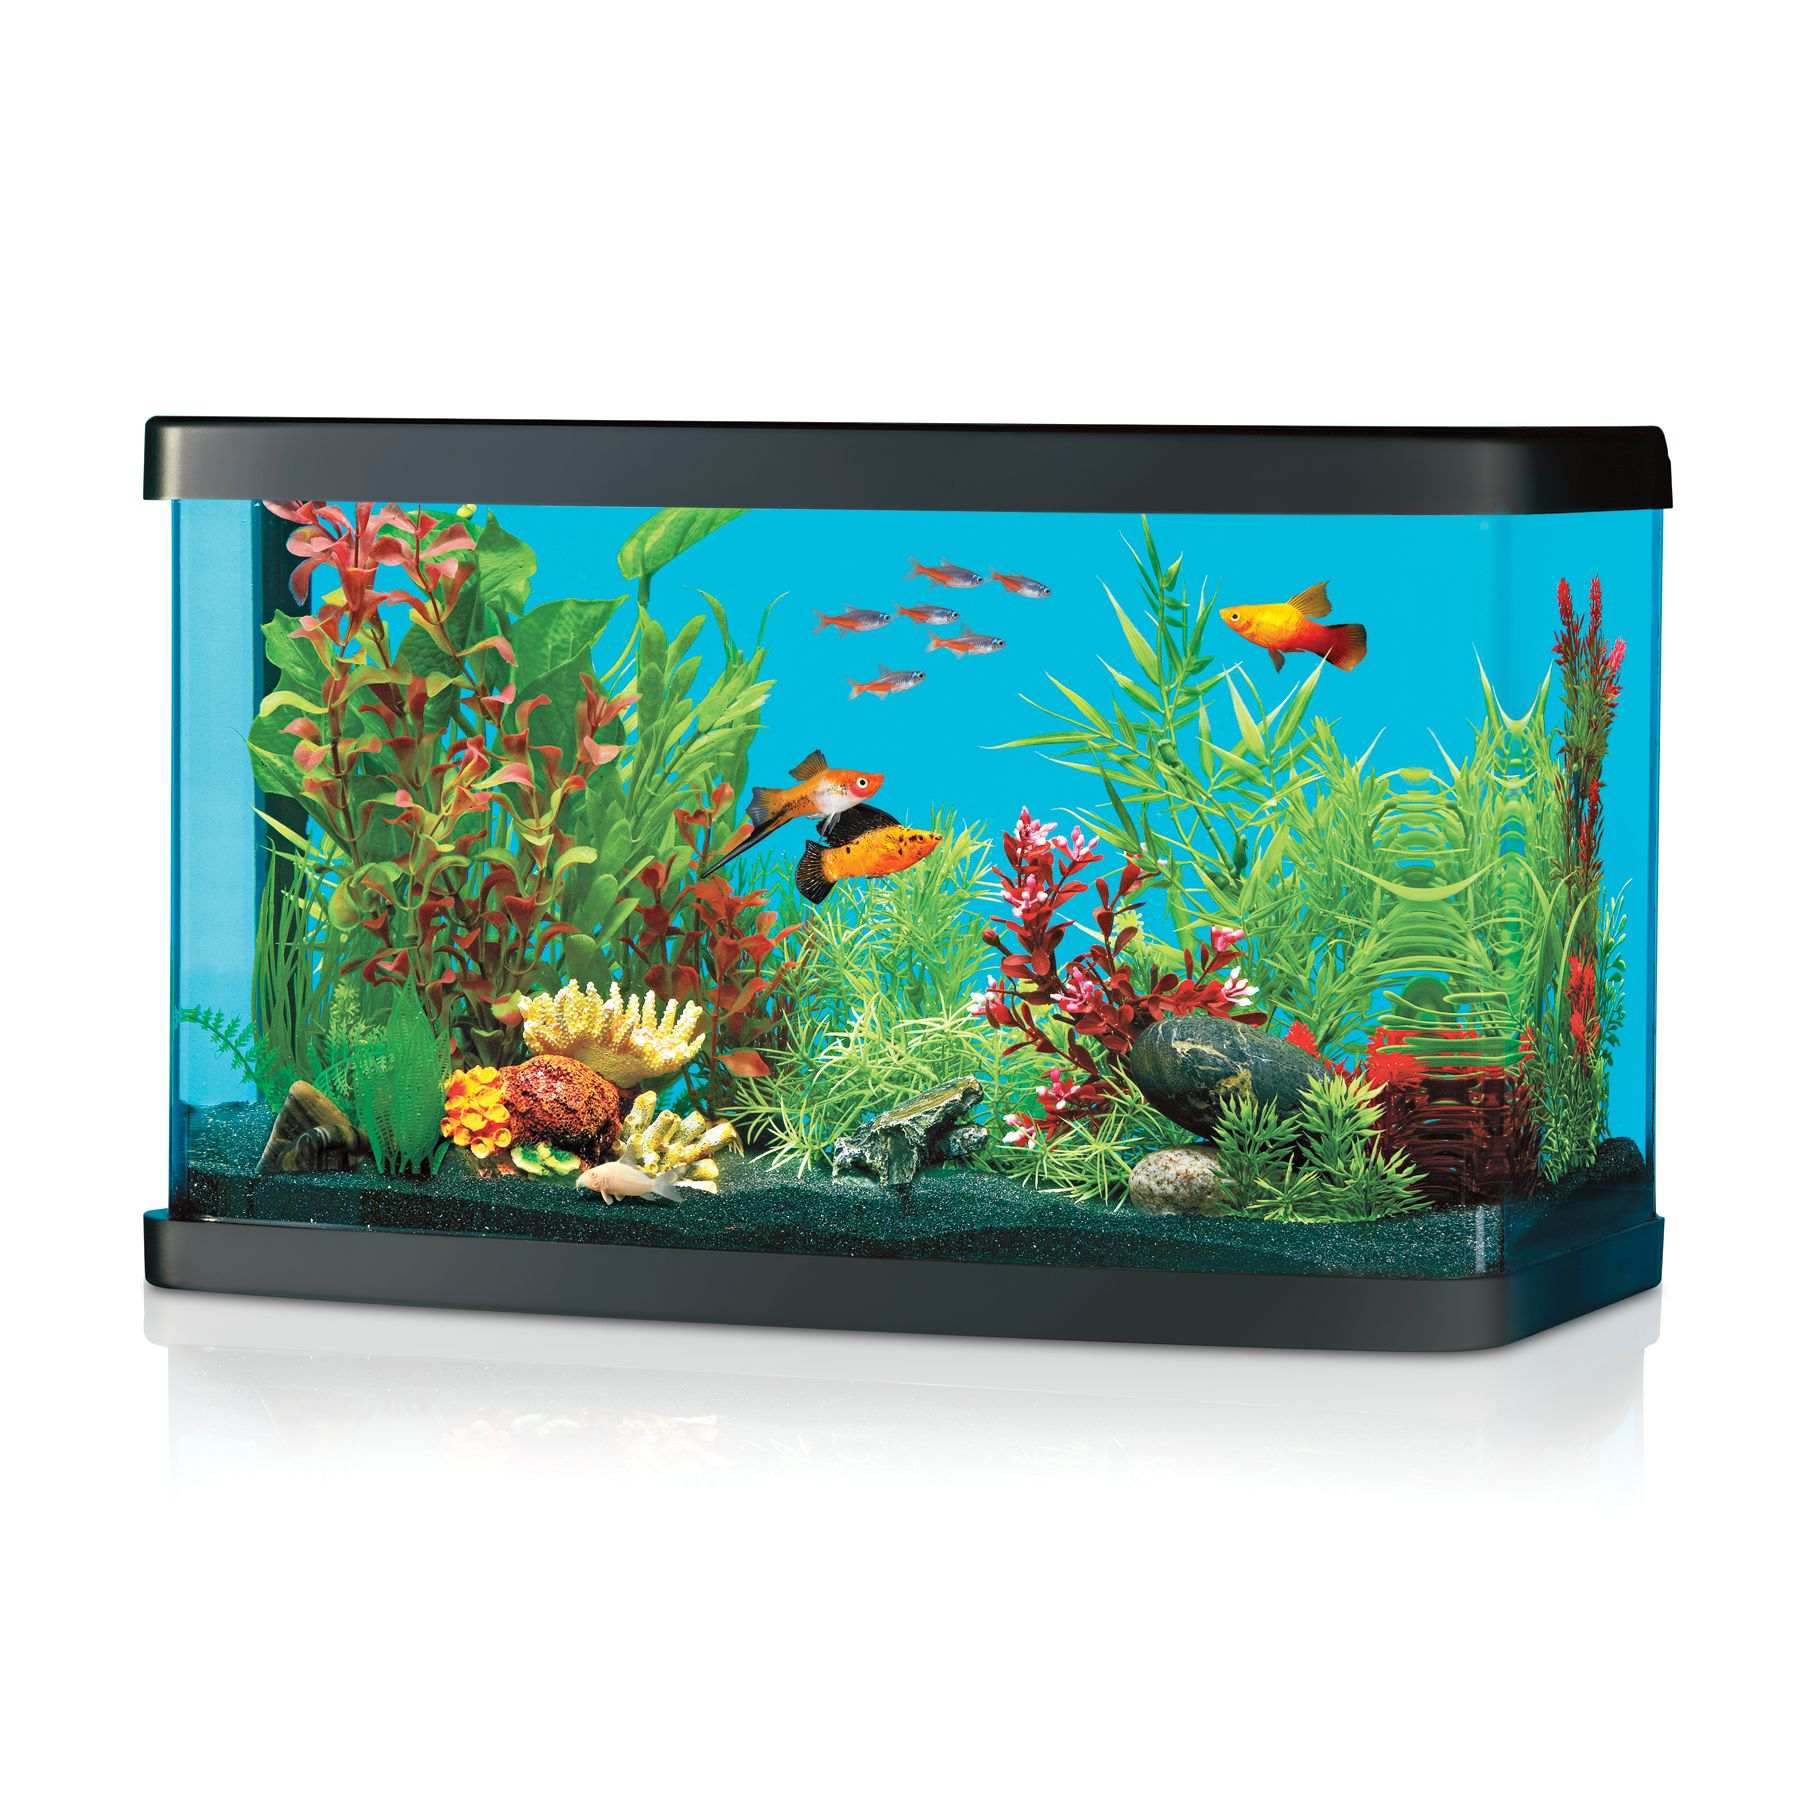 National Geographic, Aqua Oasis Starter Kit size: 8.5 Gal, Black & Clear 5210331